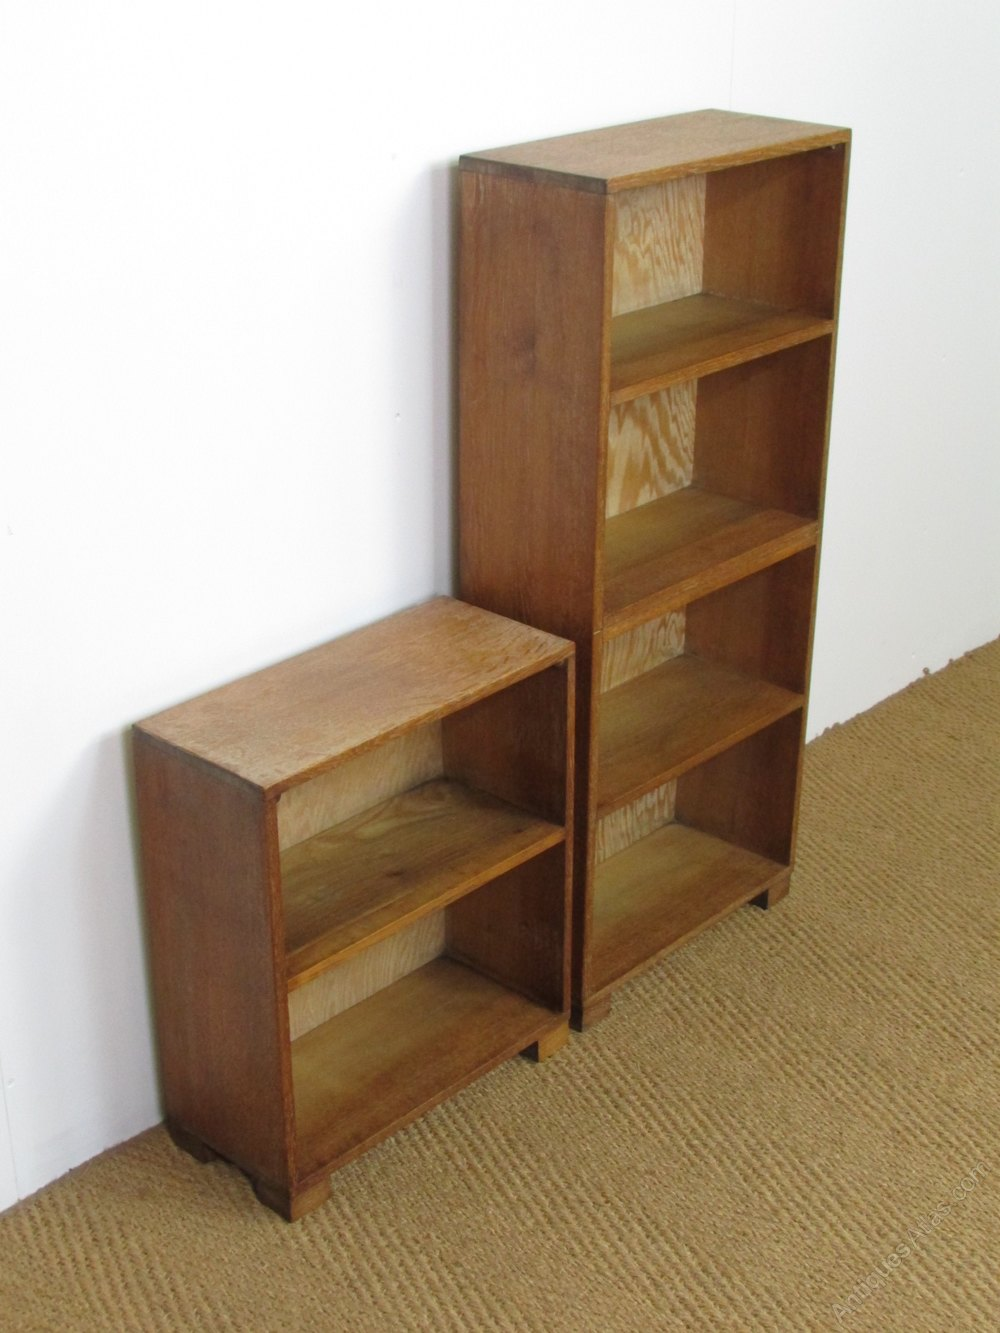 Heal's Limed Oak Unit Bookcases